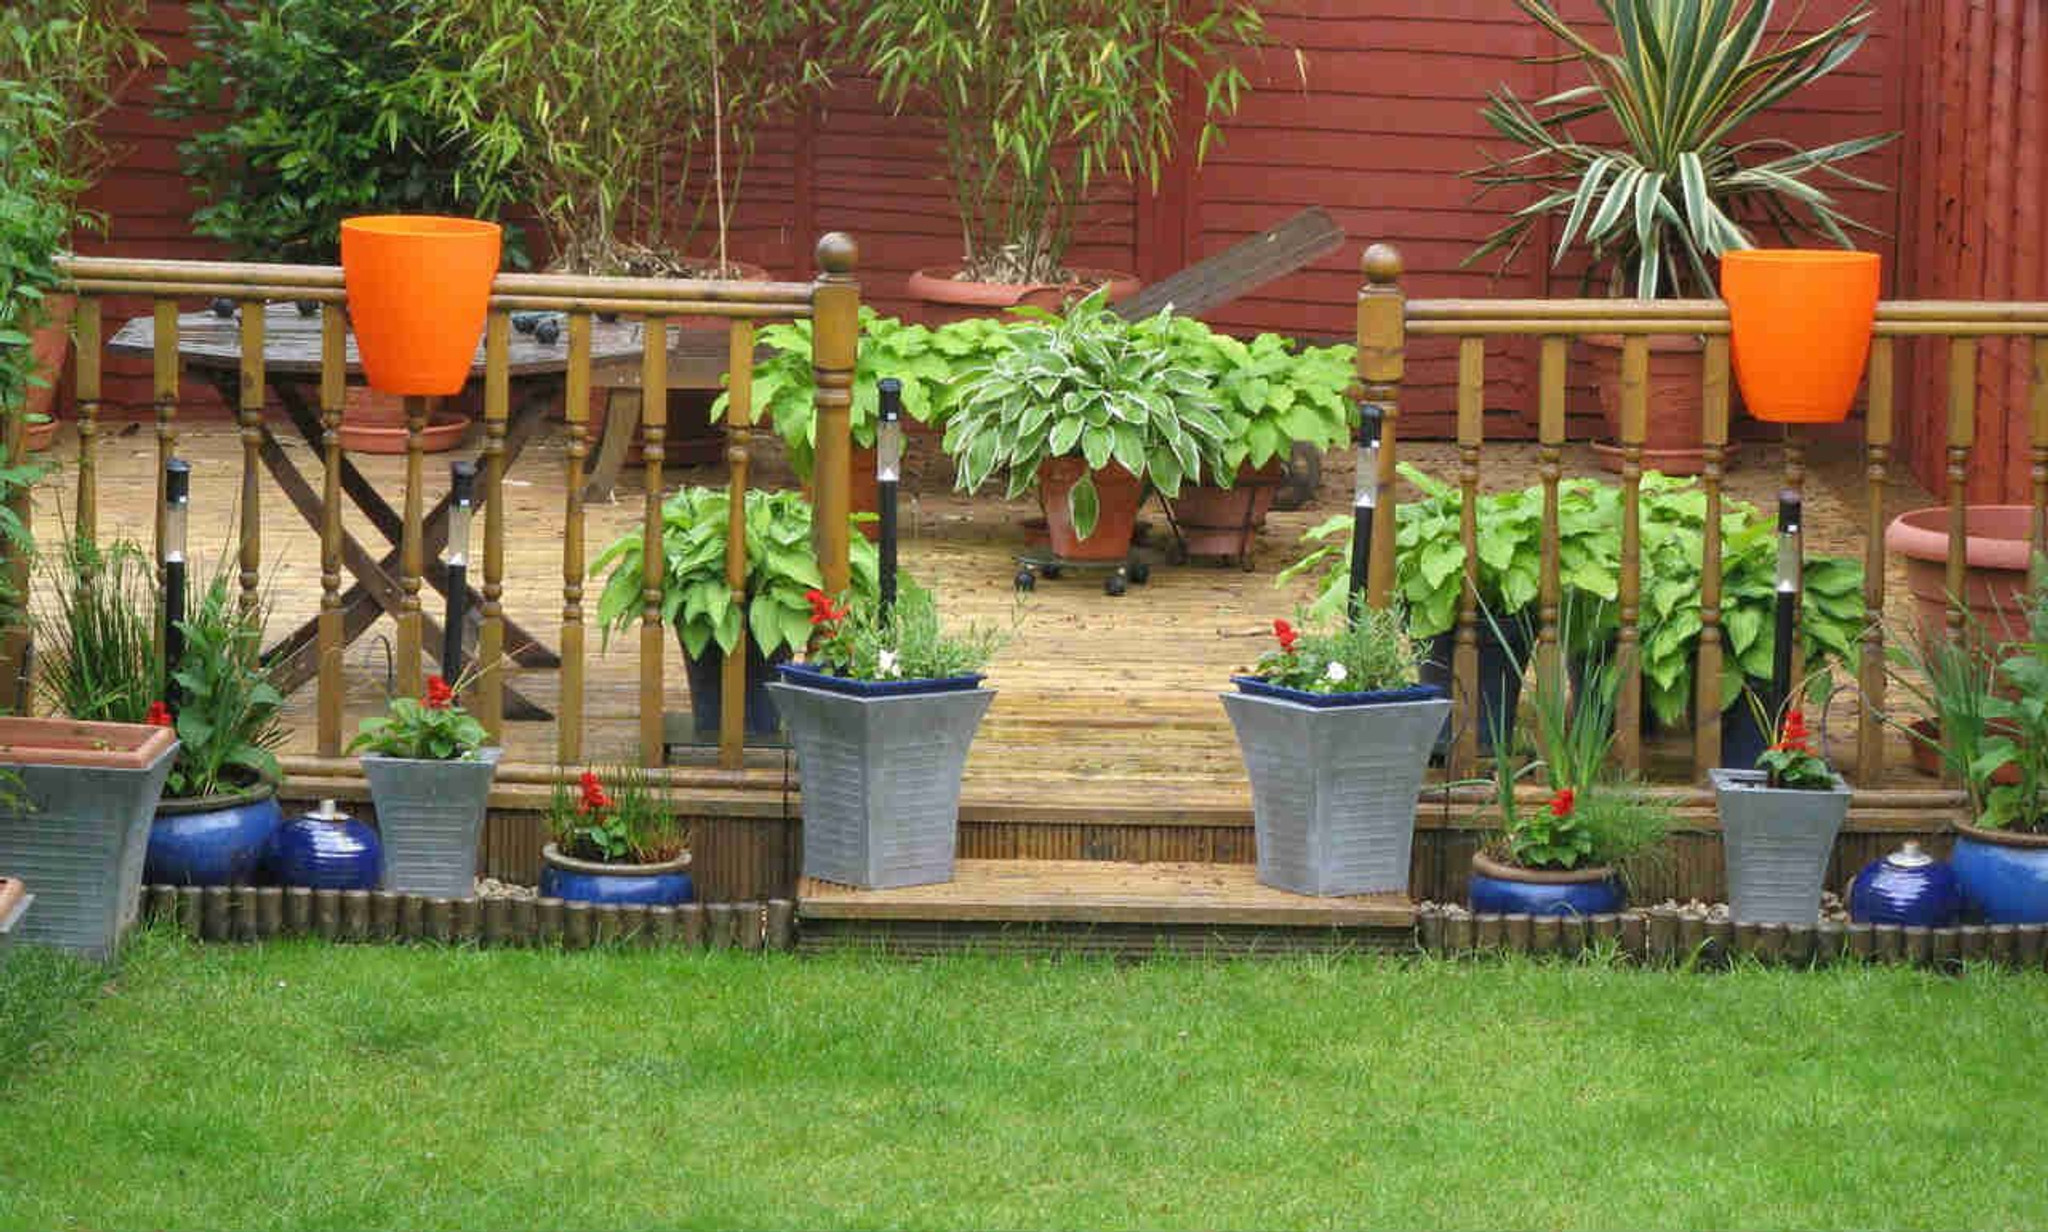 Greenbo railing planters on garden fencing.